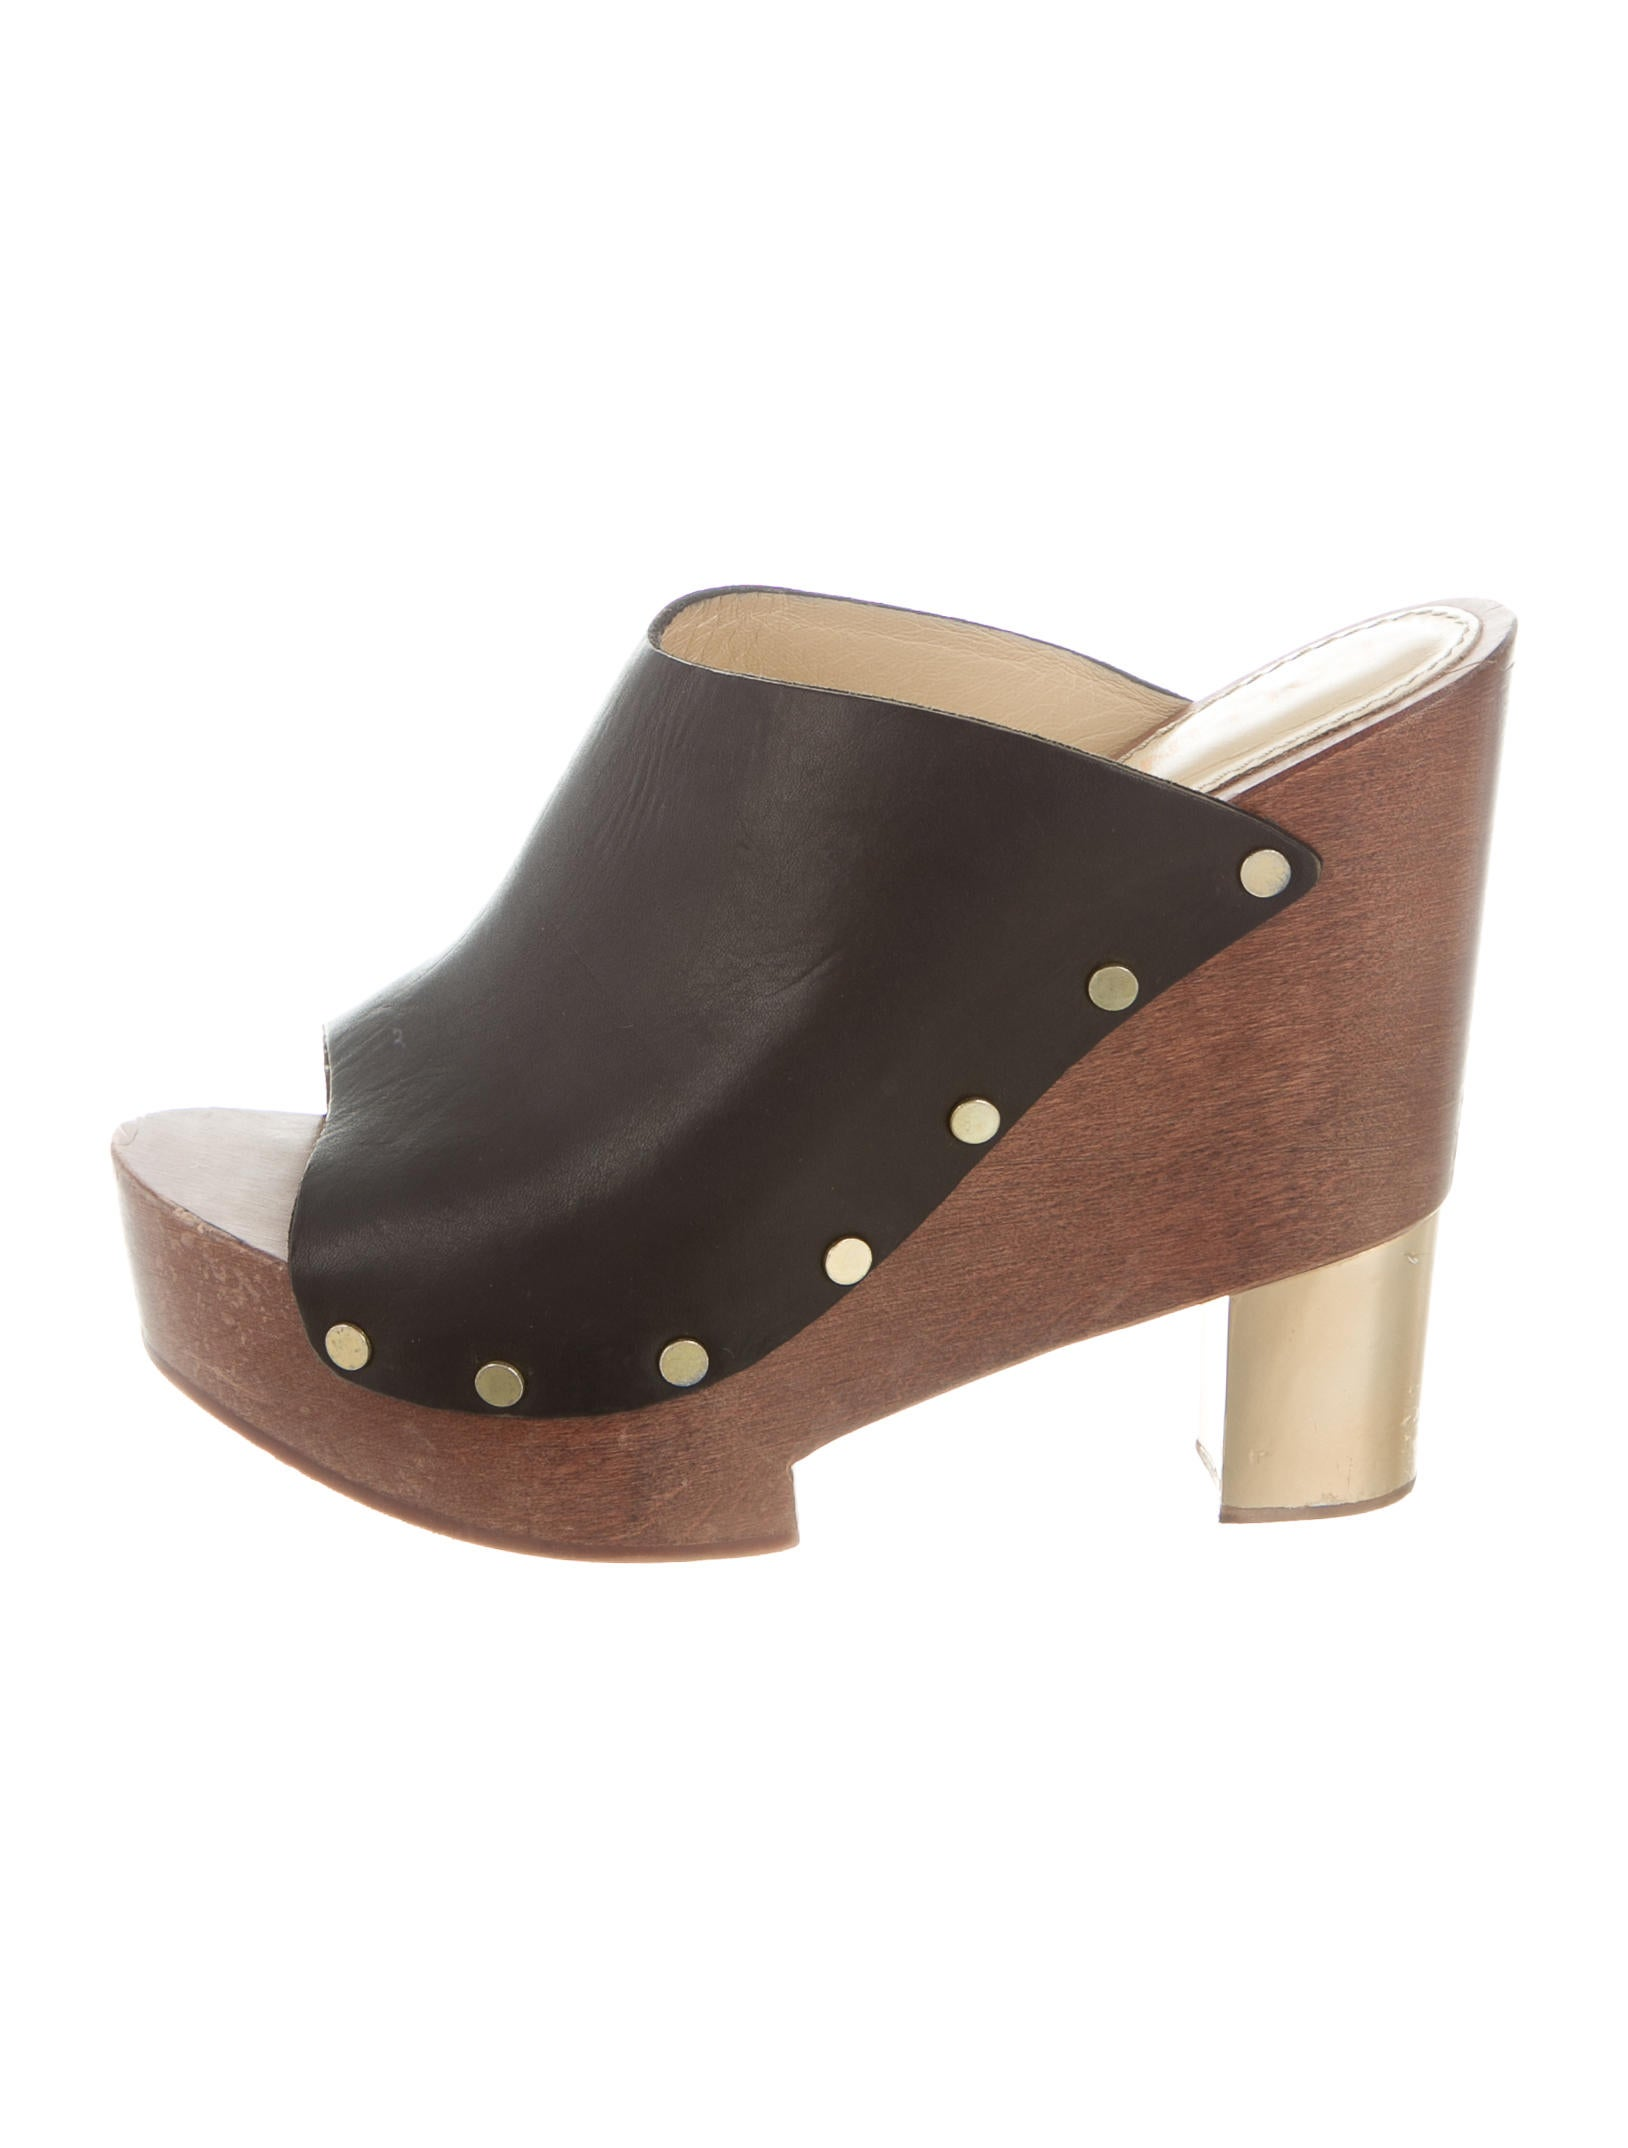 clearance nicekicks Pollini Leather Platform Sandals outlet purchase outlet wholesale price discount shop offer cheap price buy discount fNZQF2TR